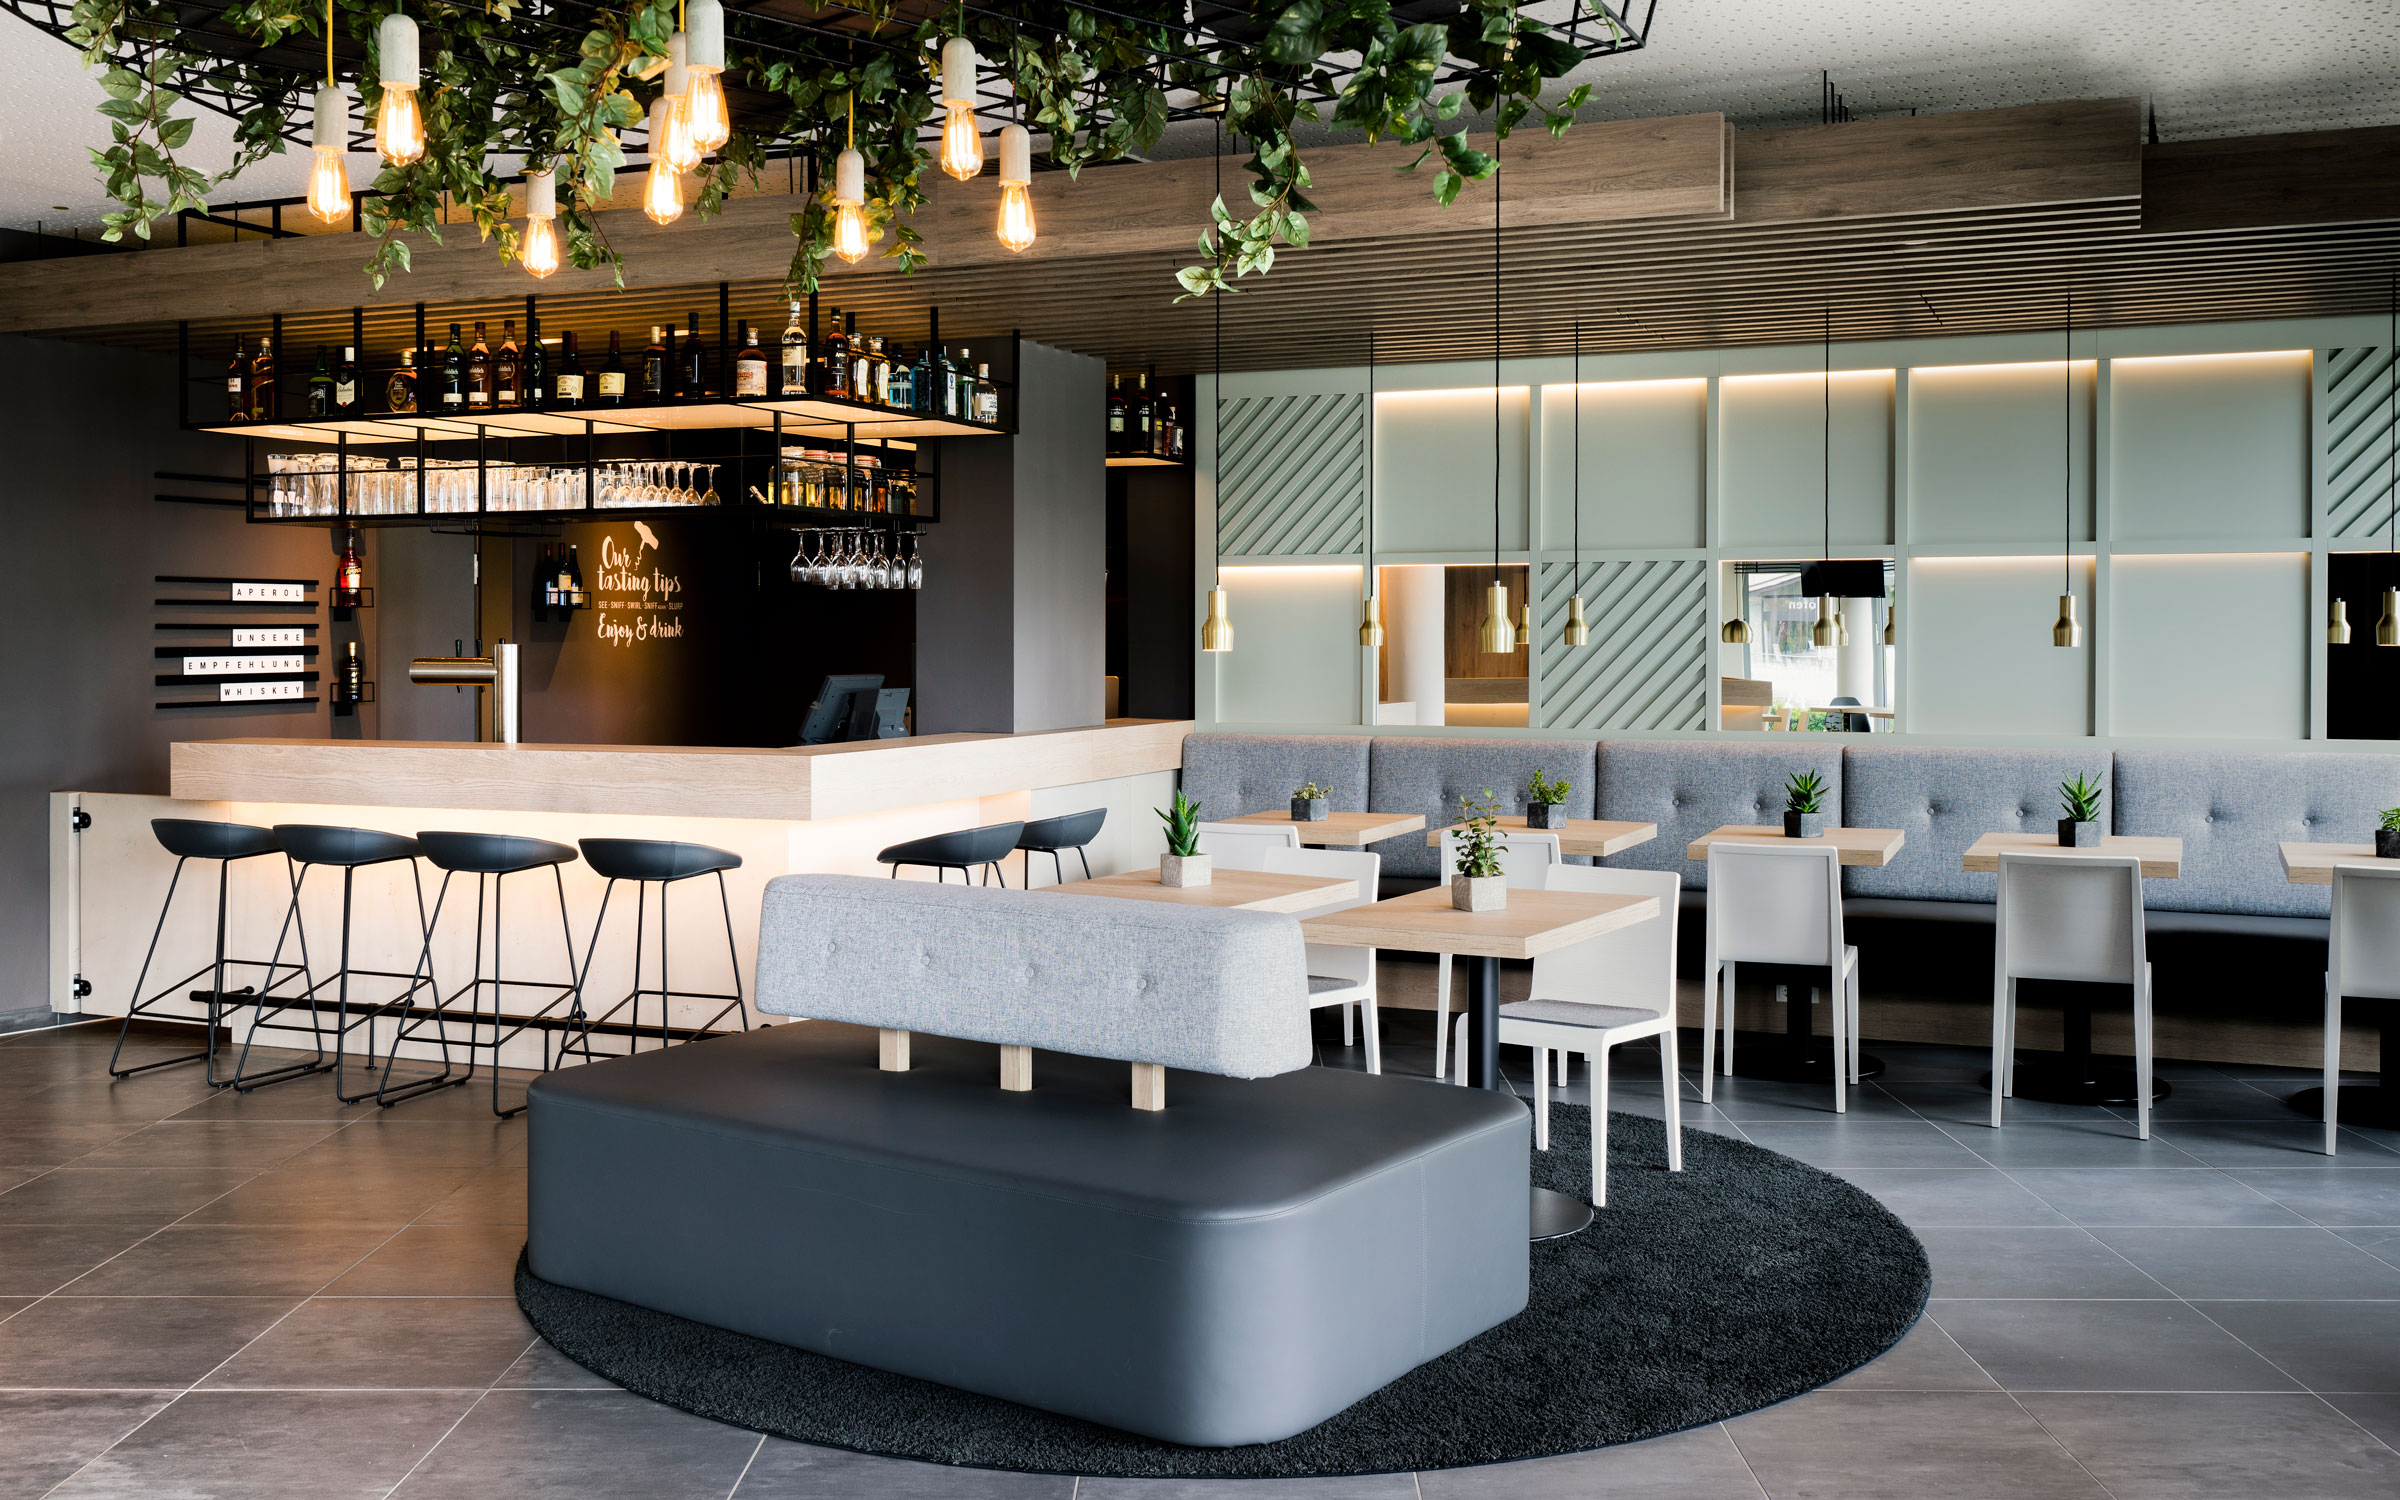 acomhotel-muenchen_01